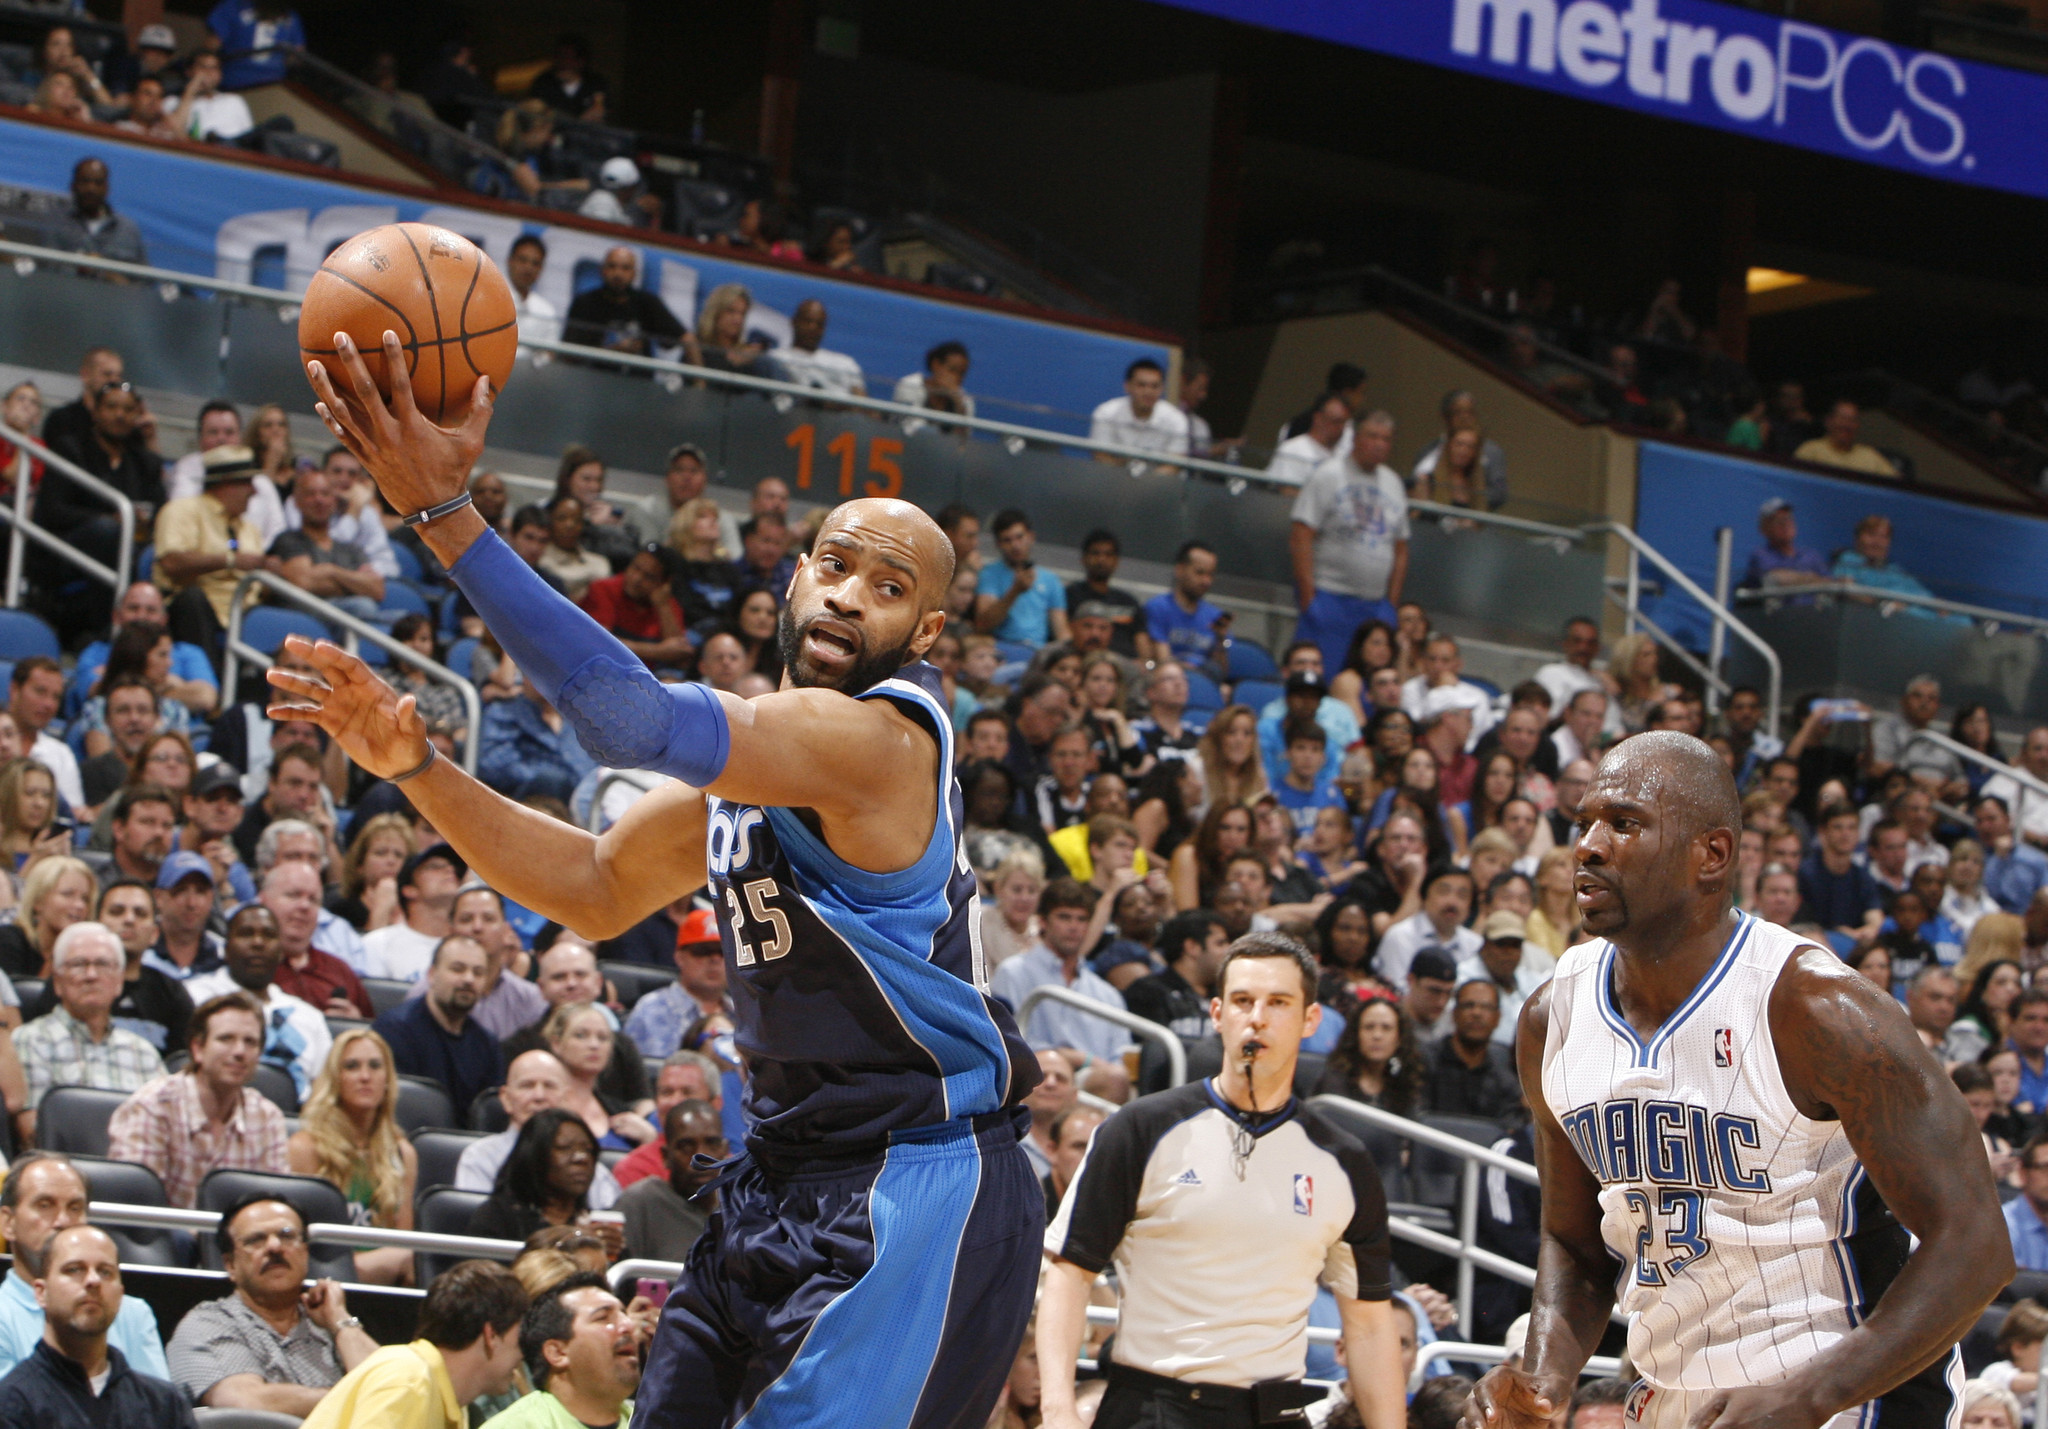 Dallas guard Vince Carter (25) grabs a rebound away from Orlando guard Jason Richardson (23) during the Mavericks' 98-100 victory over the Magic in Orlando, Fla. Friday, March 30, 2012.